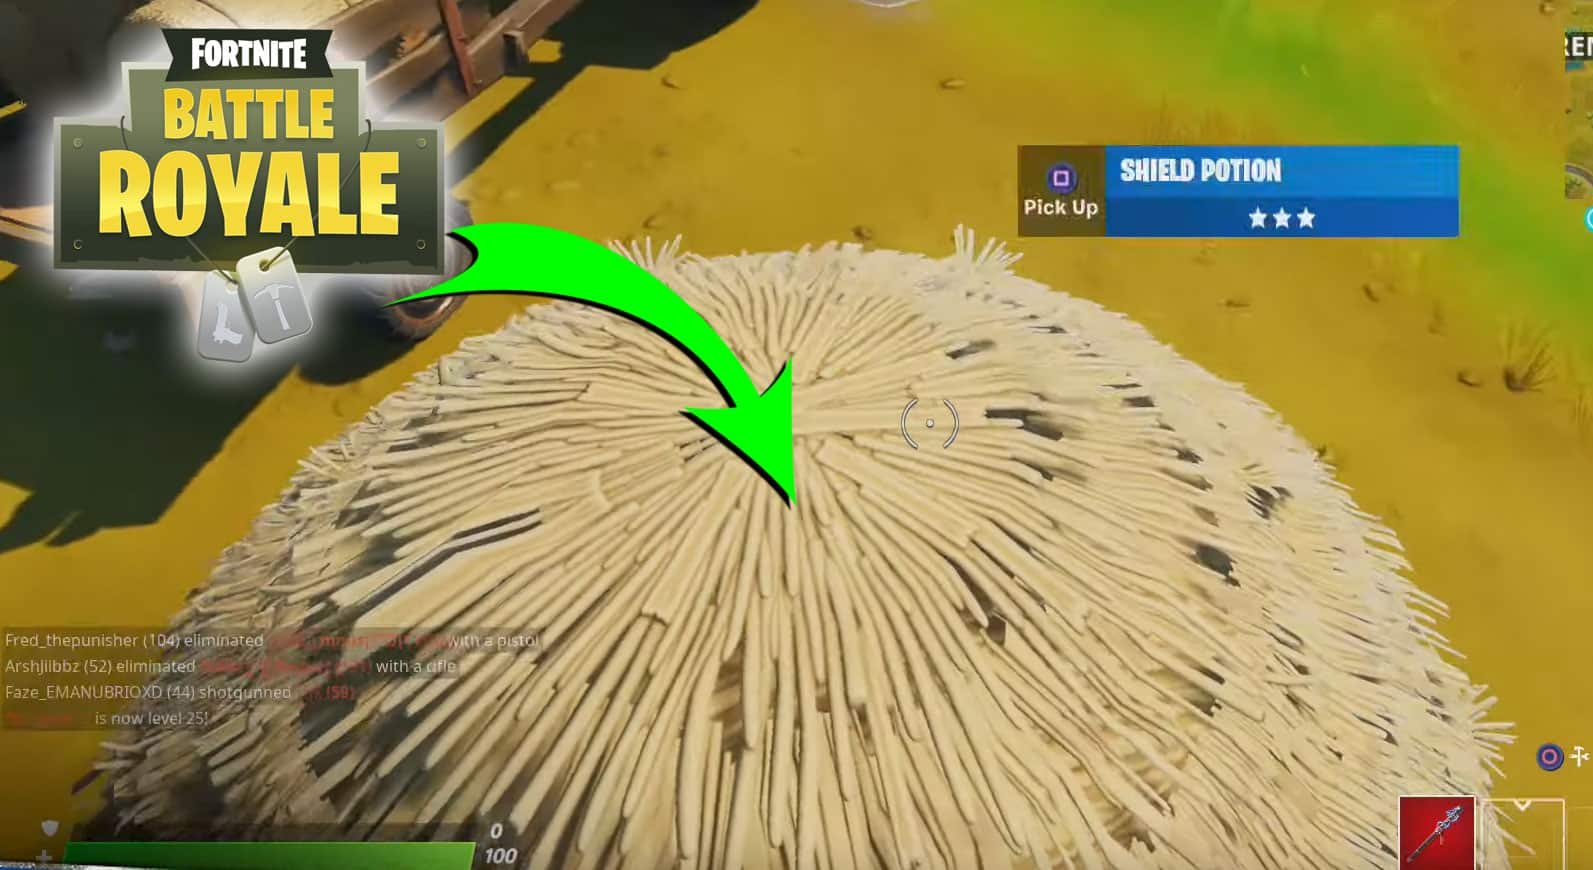 How To Save Yourself From Fall Damage In Fortnite By Landing In A Hideout Guide